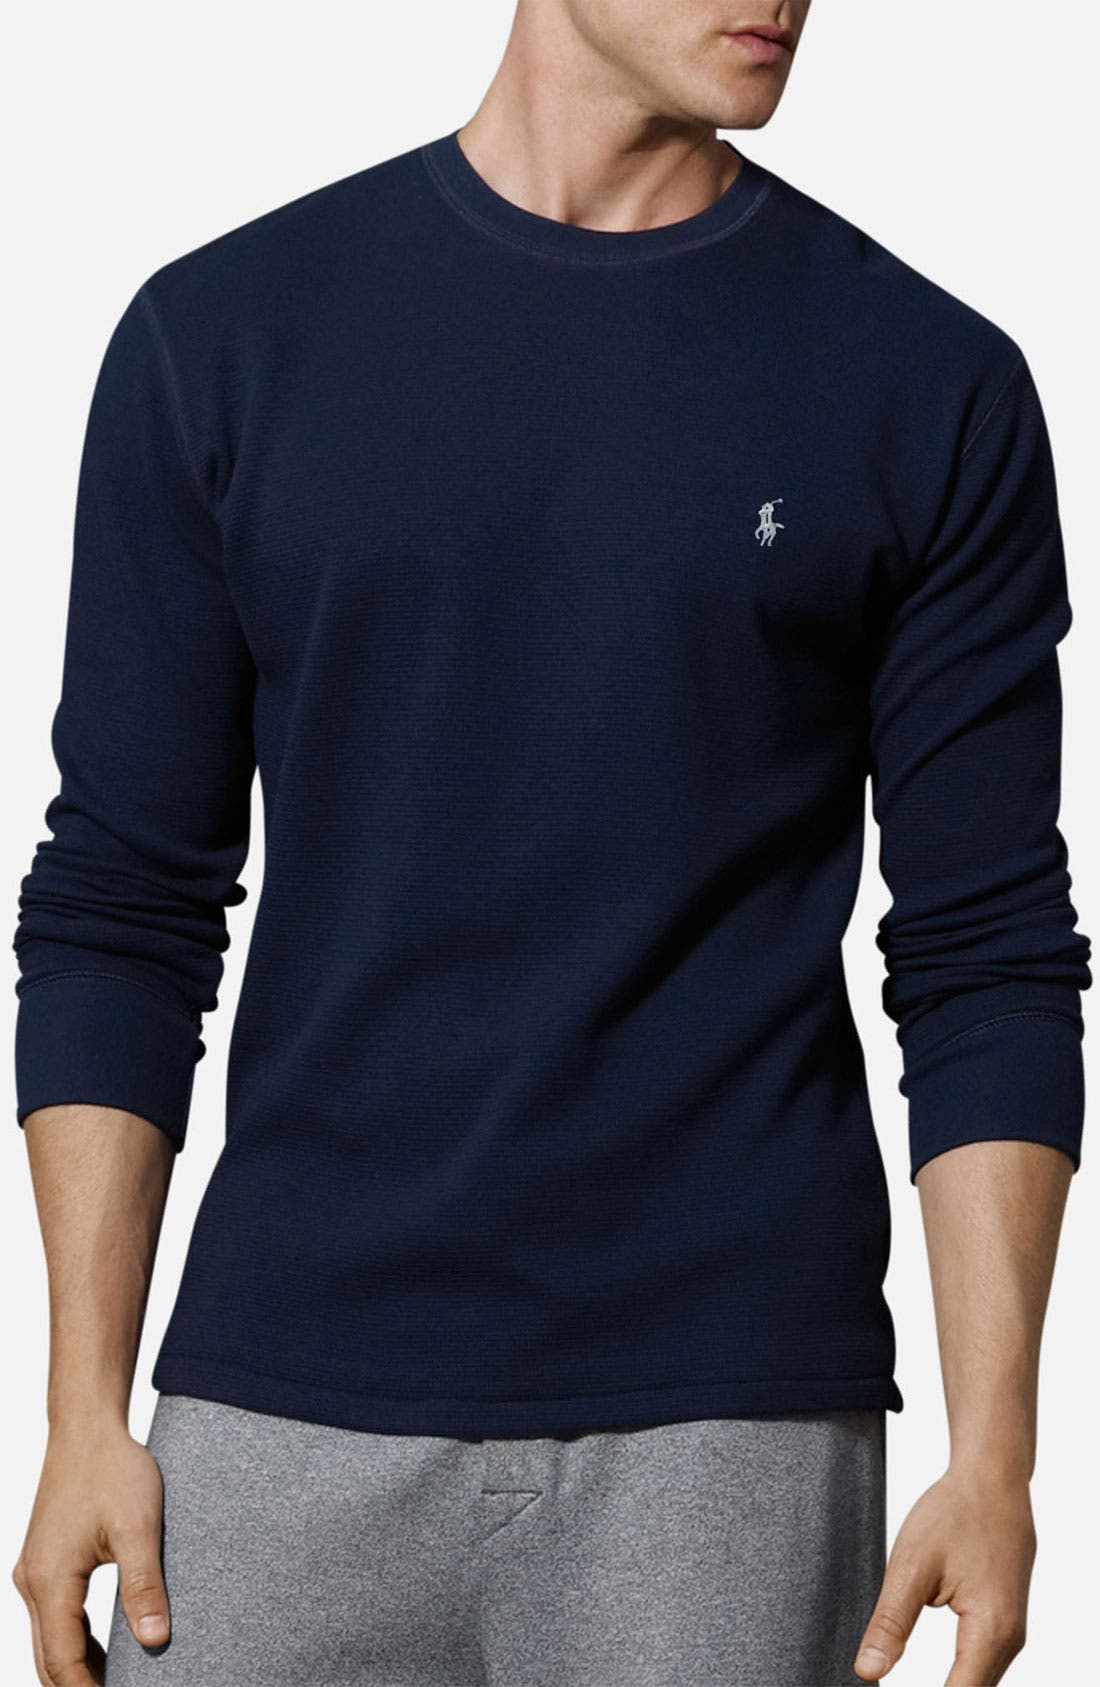 Alternate Image 1 Selected - Polo Ralph Lauren Thermal Crewneck Lounge Shirt